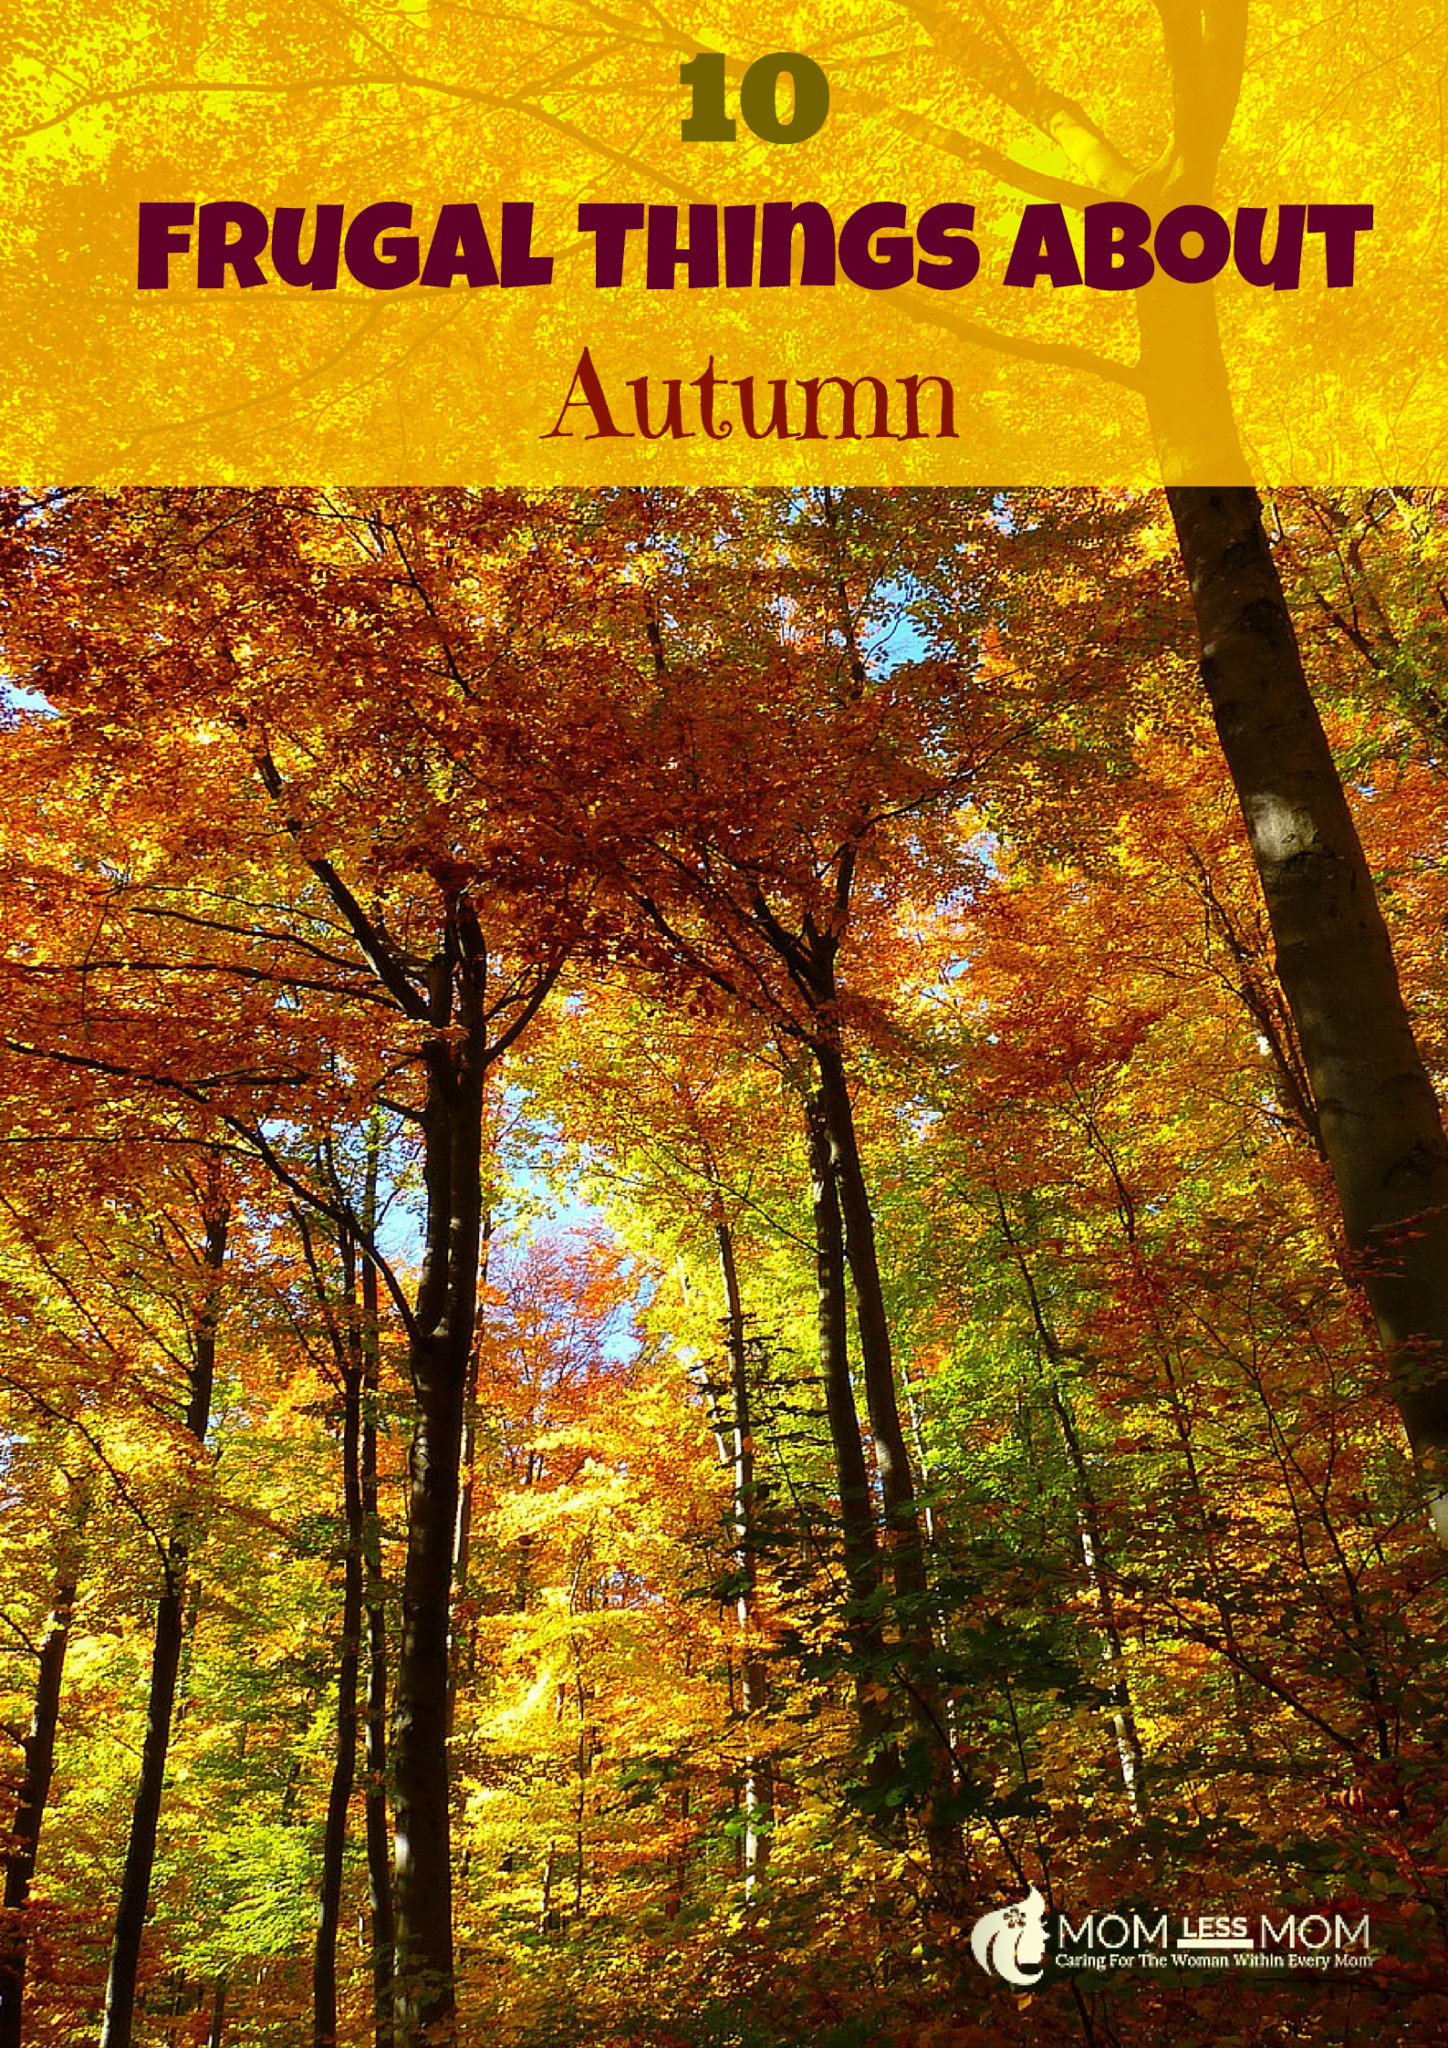 10 Frugal Things about Autumn